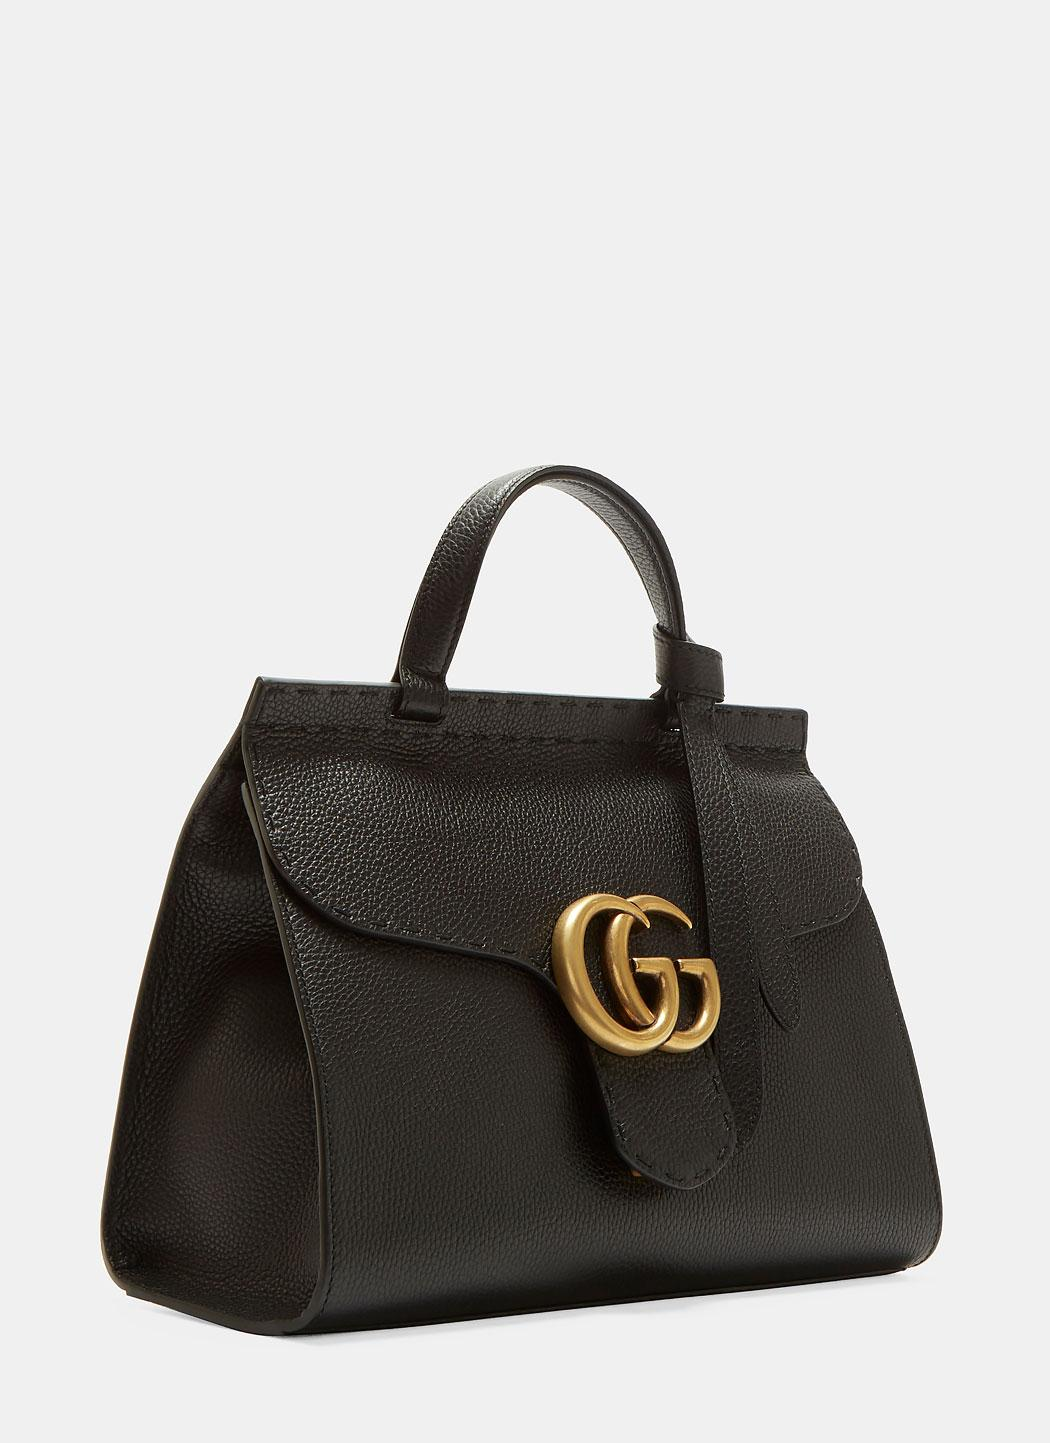 11a5fd634a16 Gucci Marmont Medium Purseforum | Stanford Center for Opportunity ...